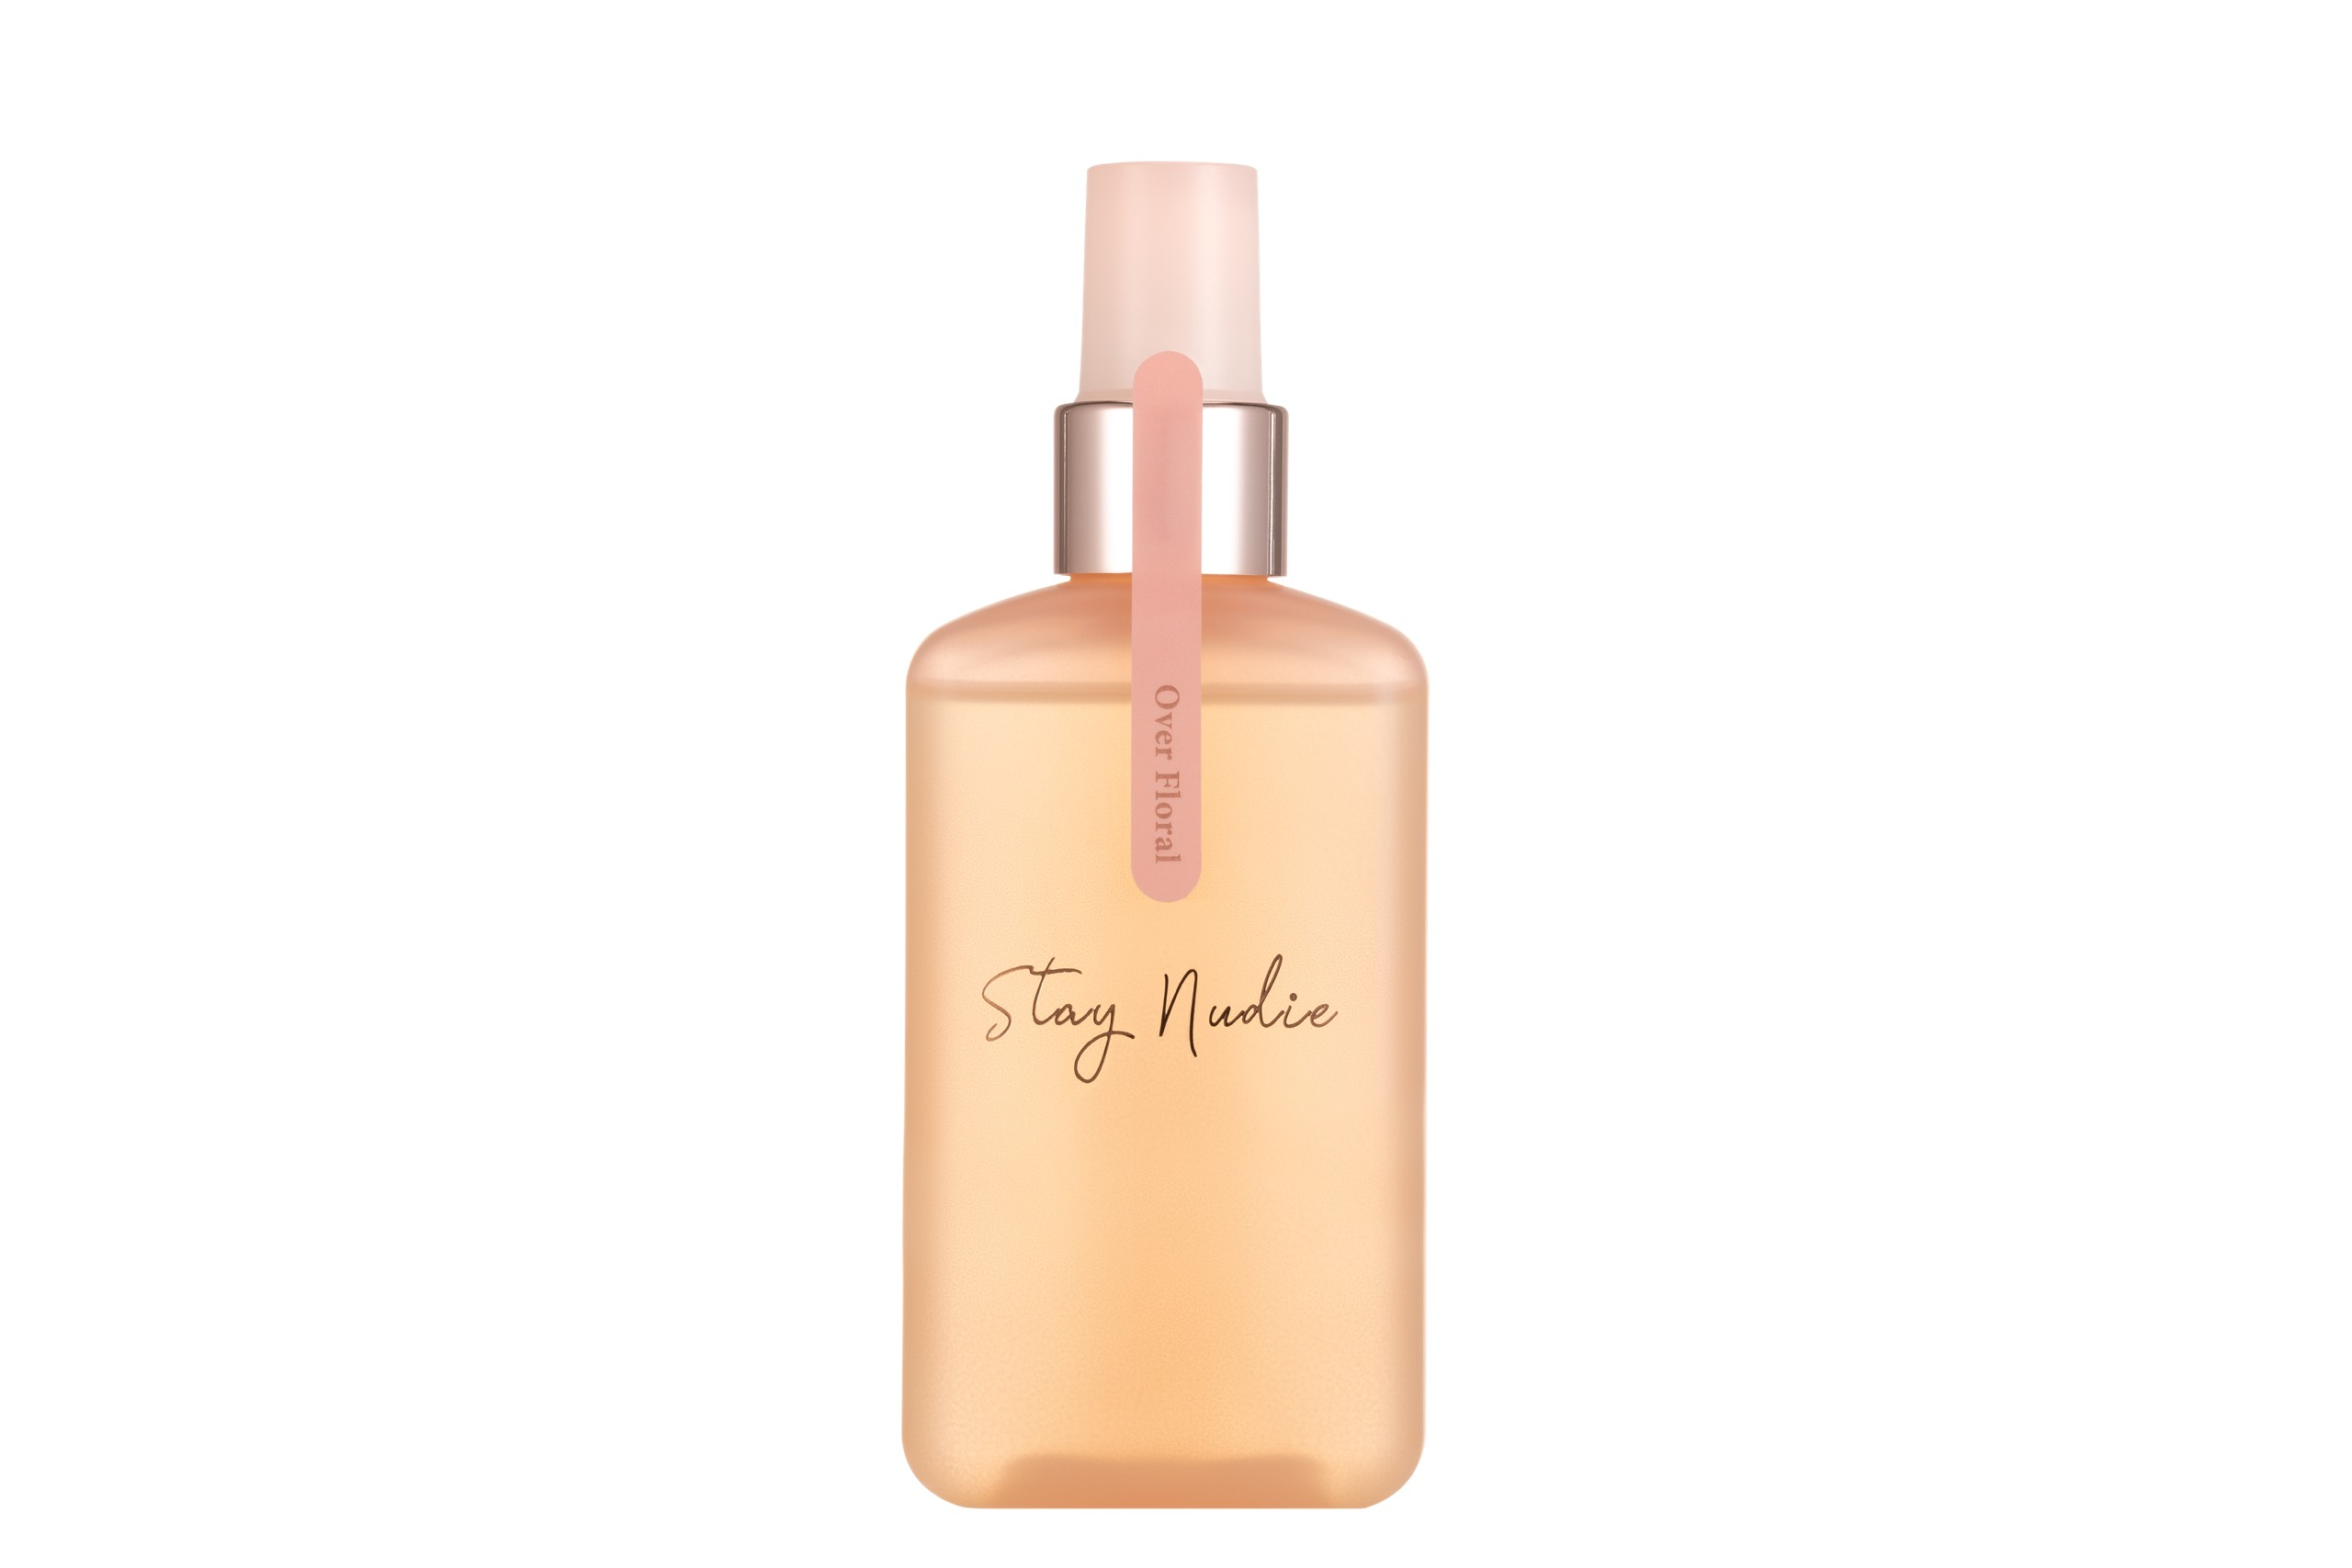 Xịt Thơm Toàn Thân Bodyholic Stay Nudie Hair & Body Mist 100ml